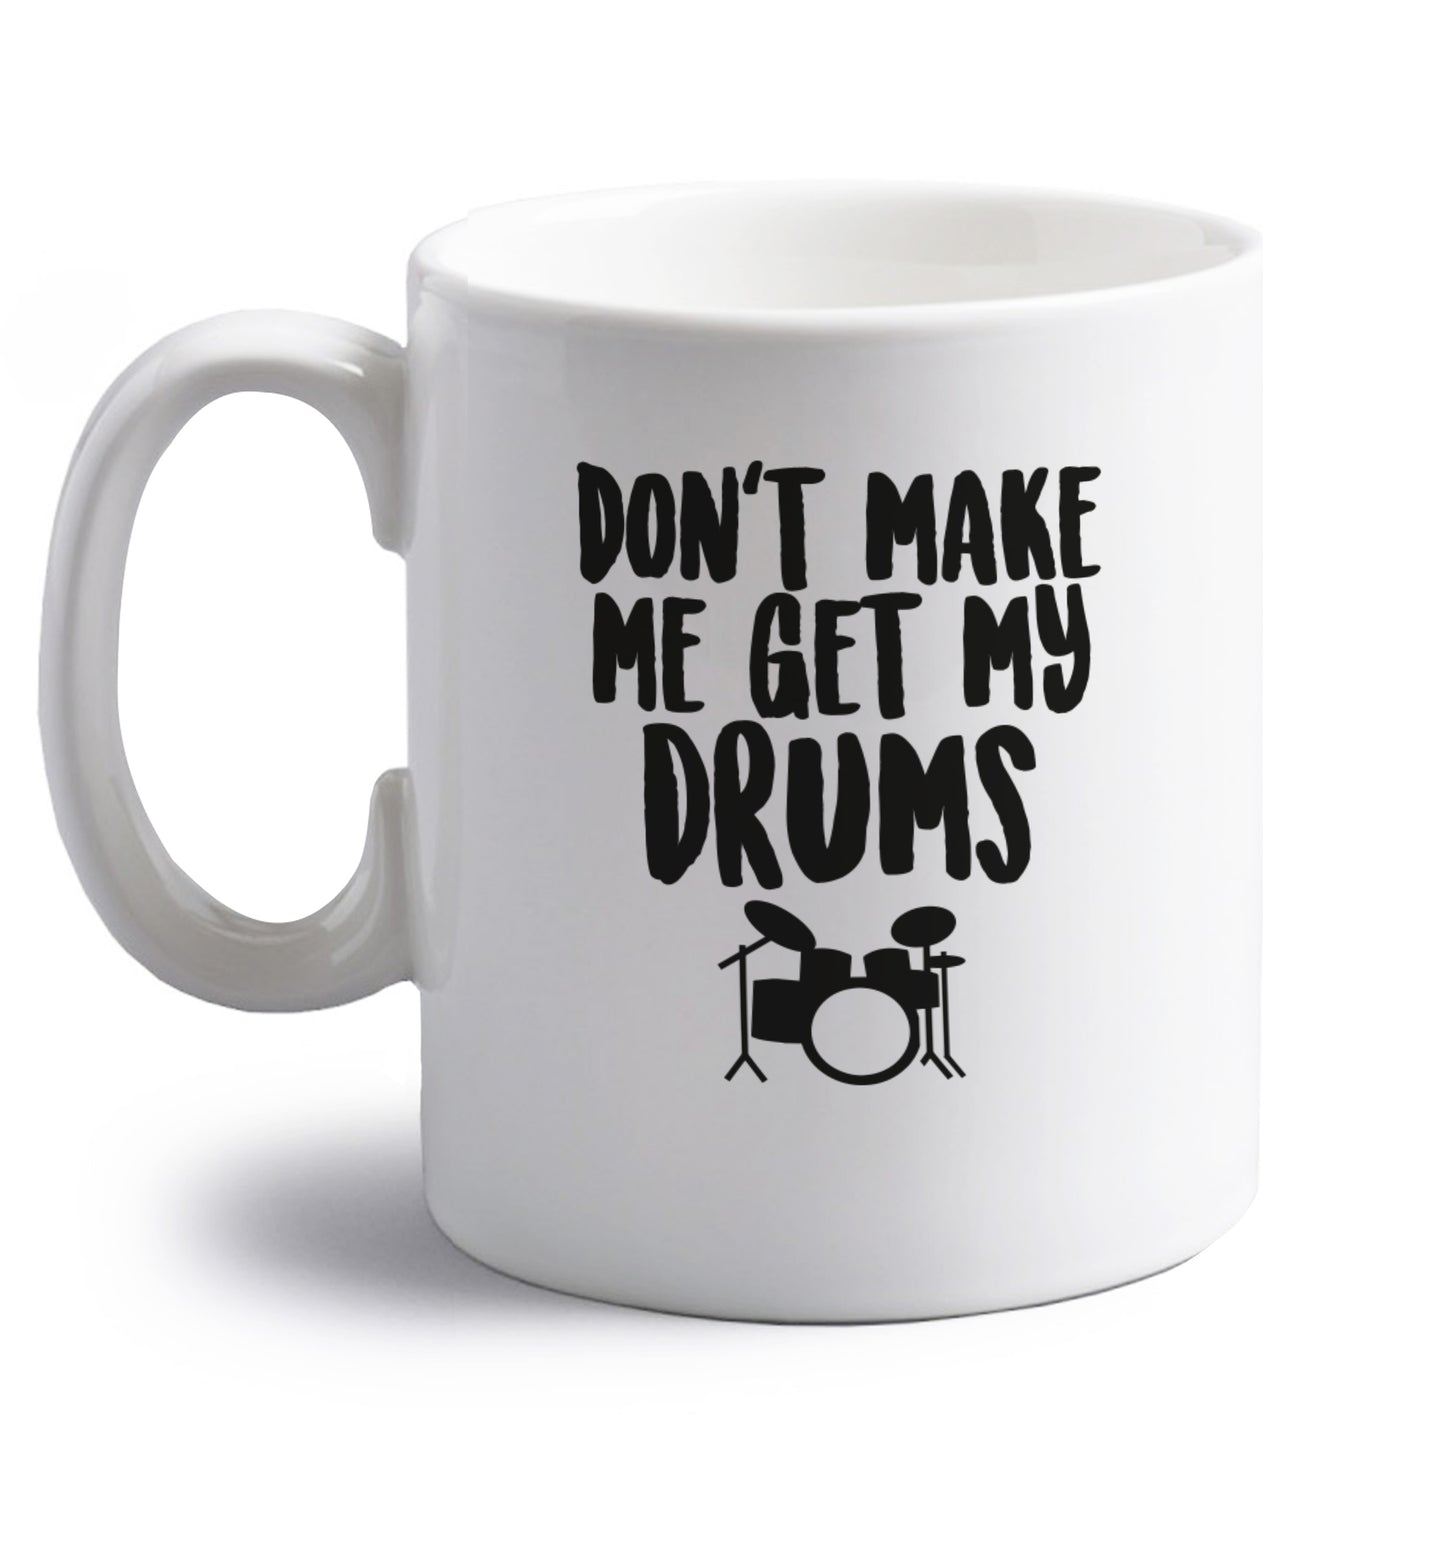 Don't make me get my drums right handed white ceramic mug